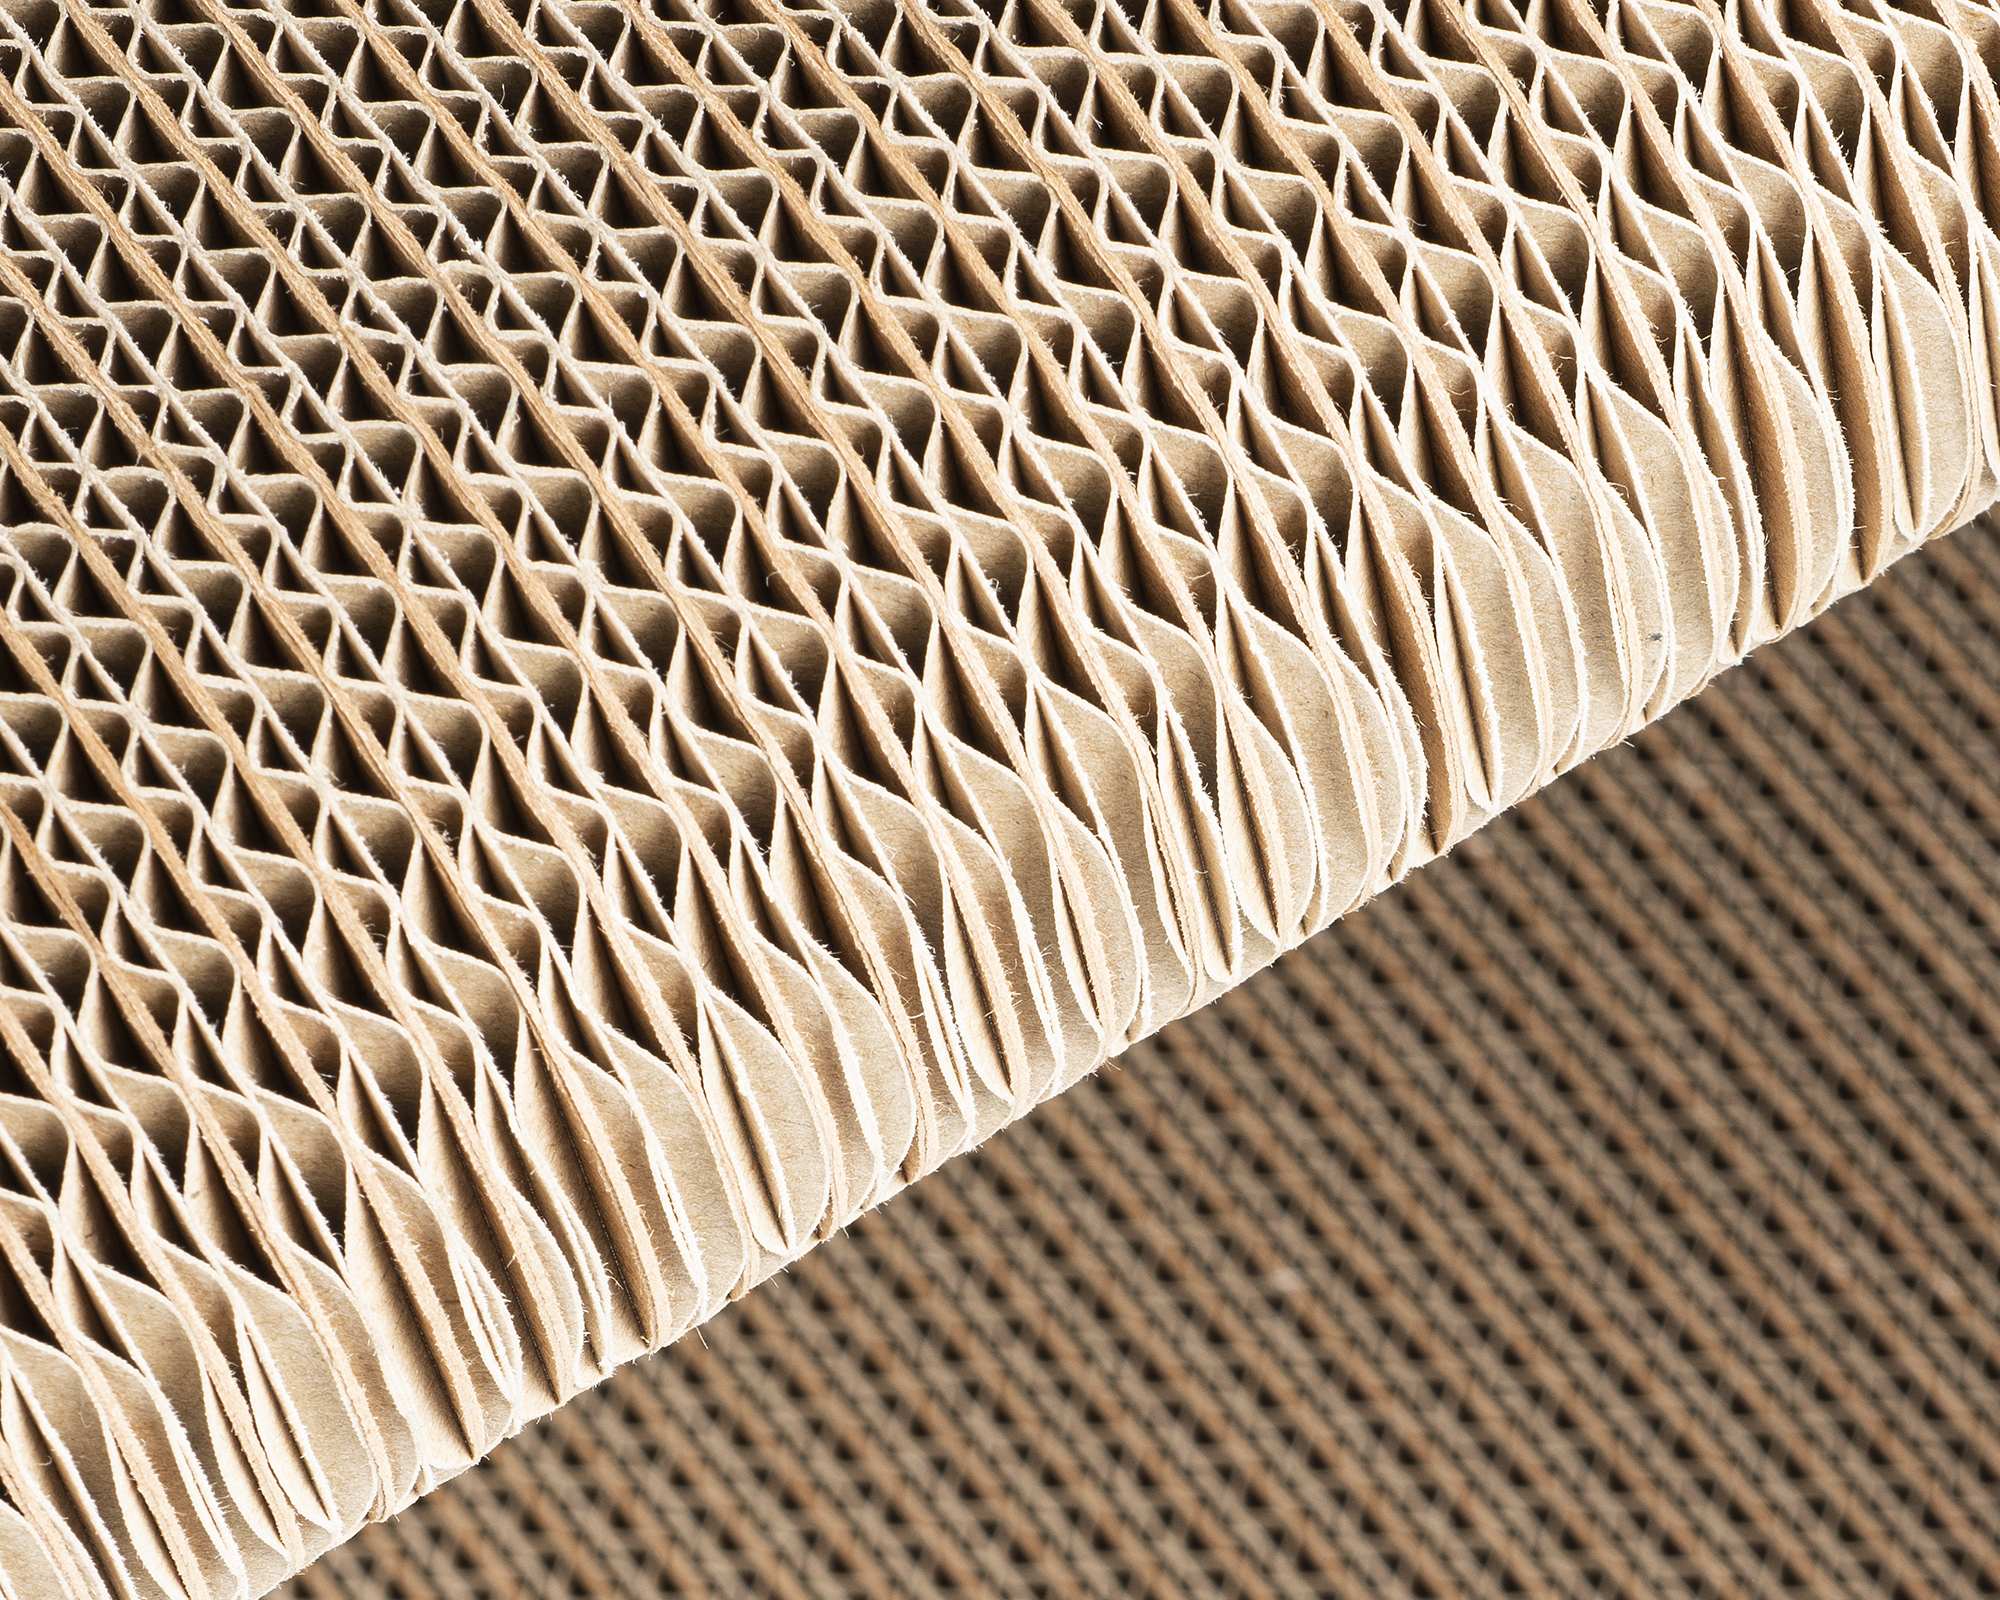 High-quality cat scratcher made of fsc-certified heavy duty corrugated cardboard with long fresh wood fibers